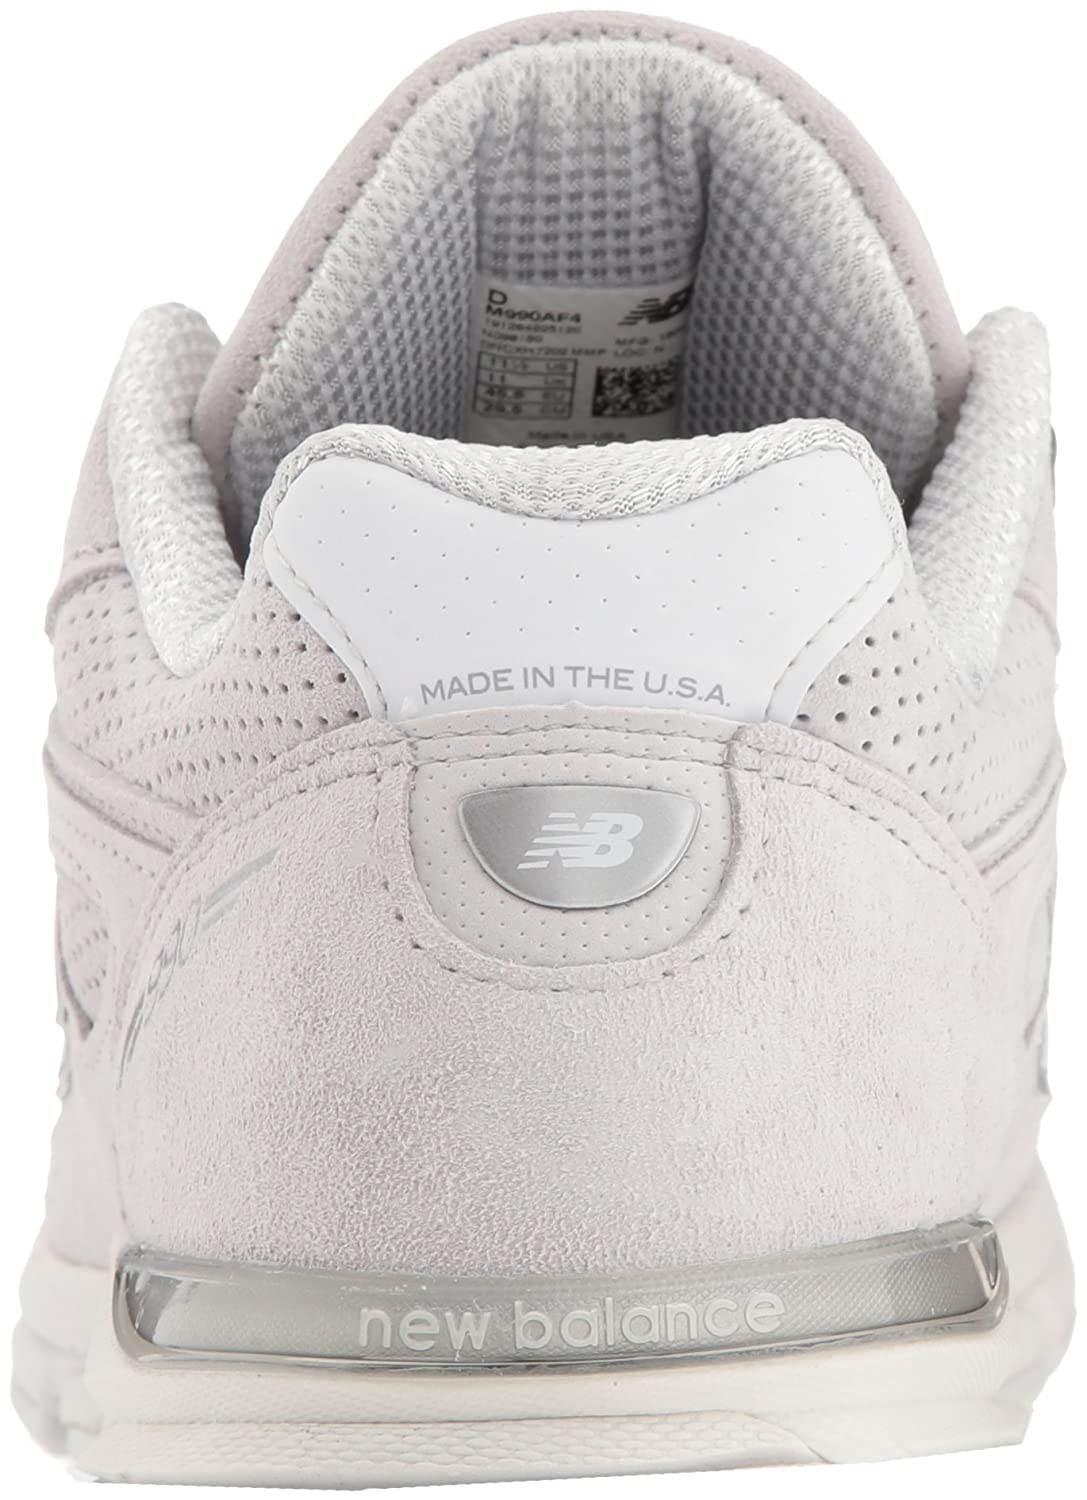 New-Balance-990-990v4-Classicc-Retro-Fashion-Sneaker-Made-in-USA thumbnail 11